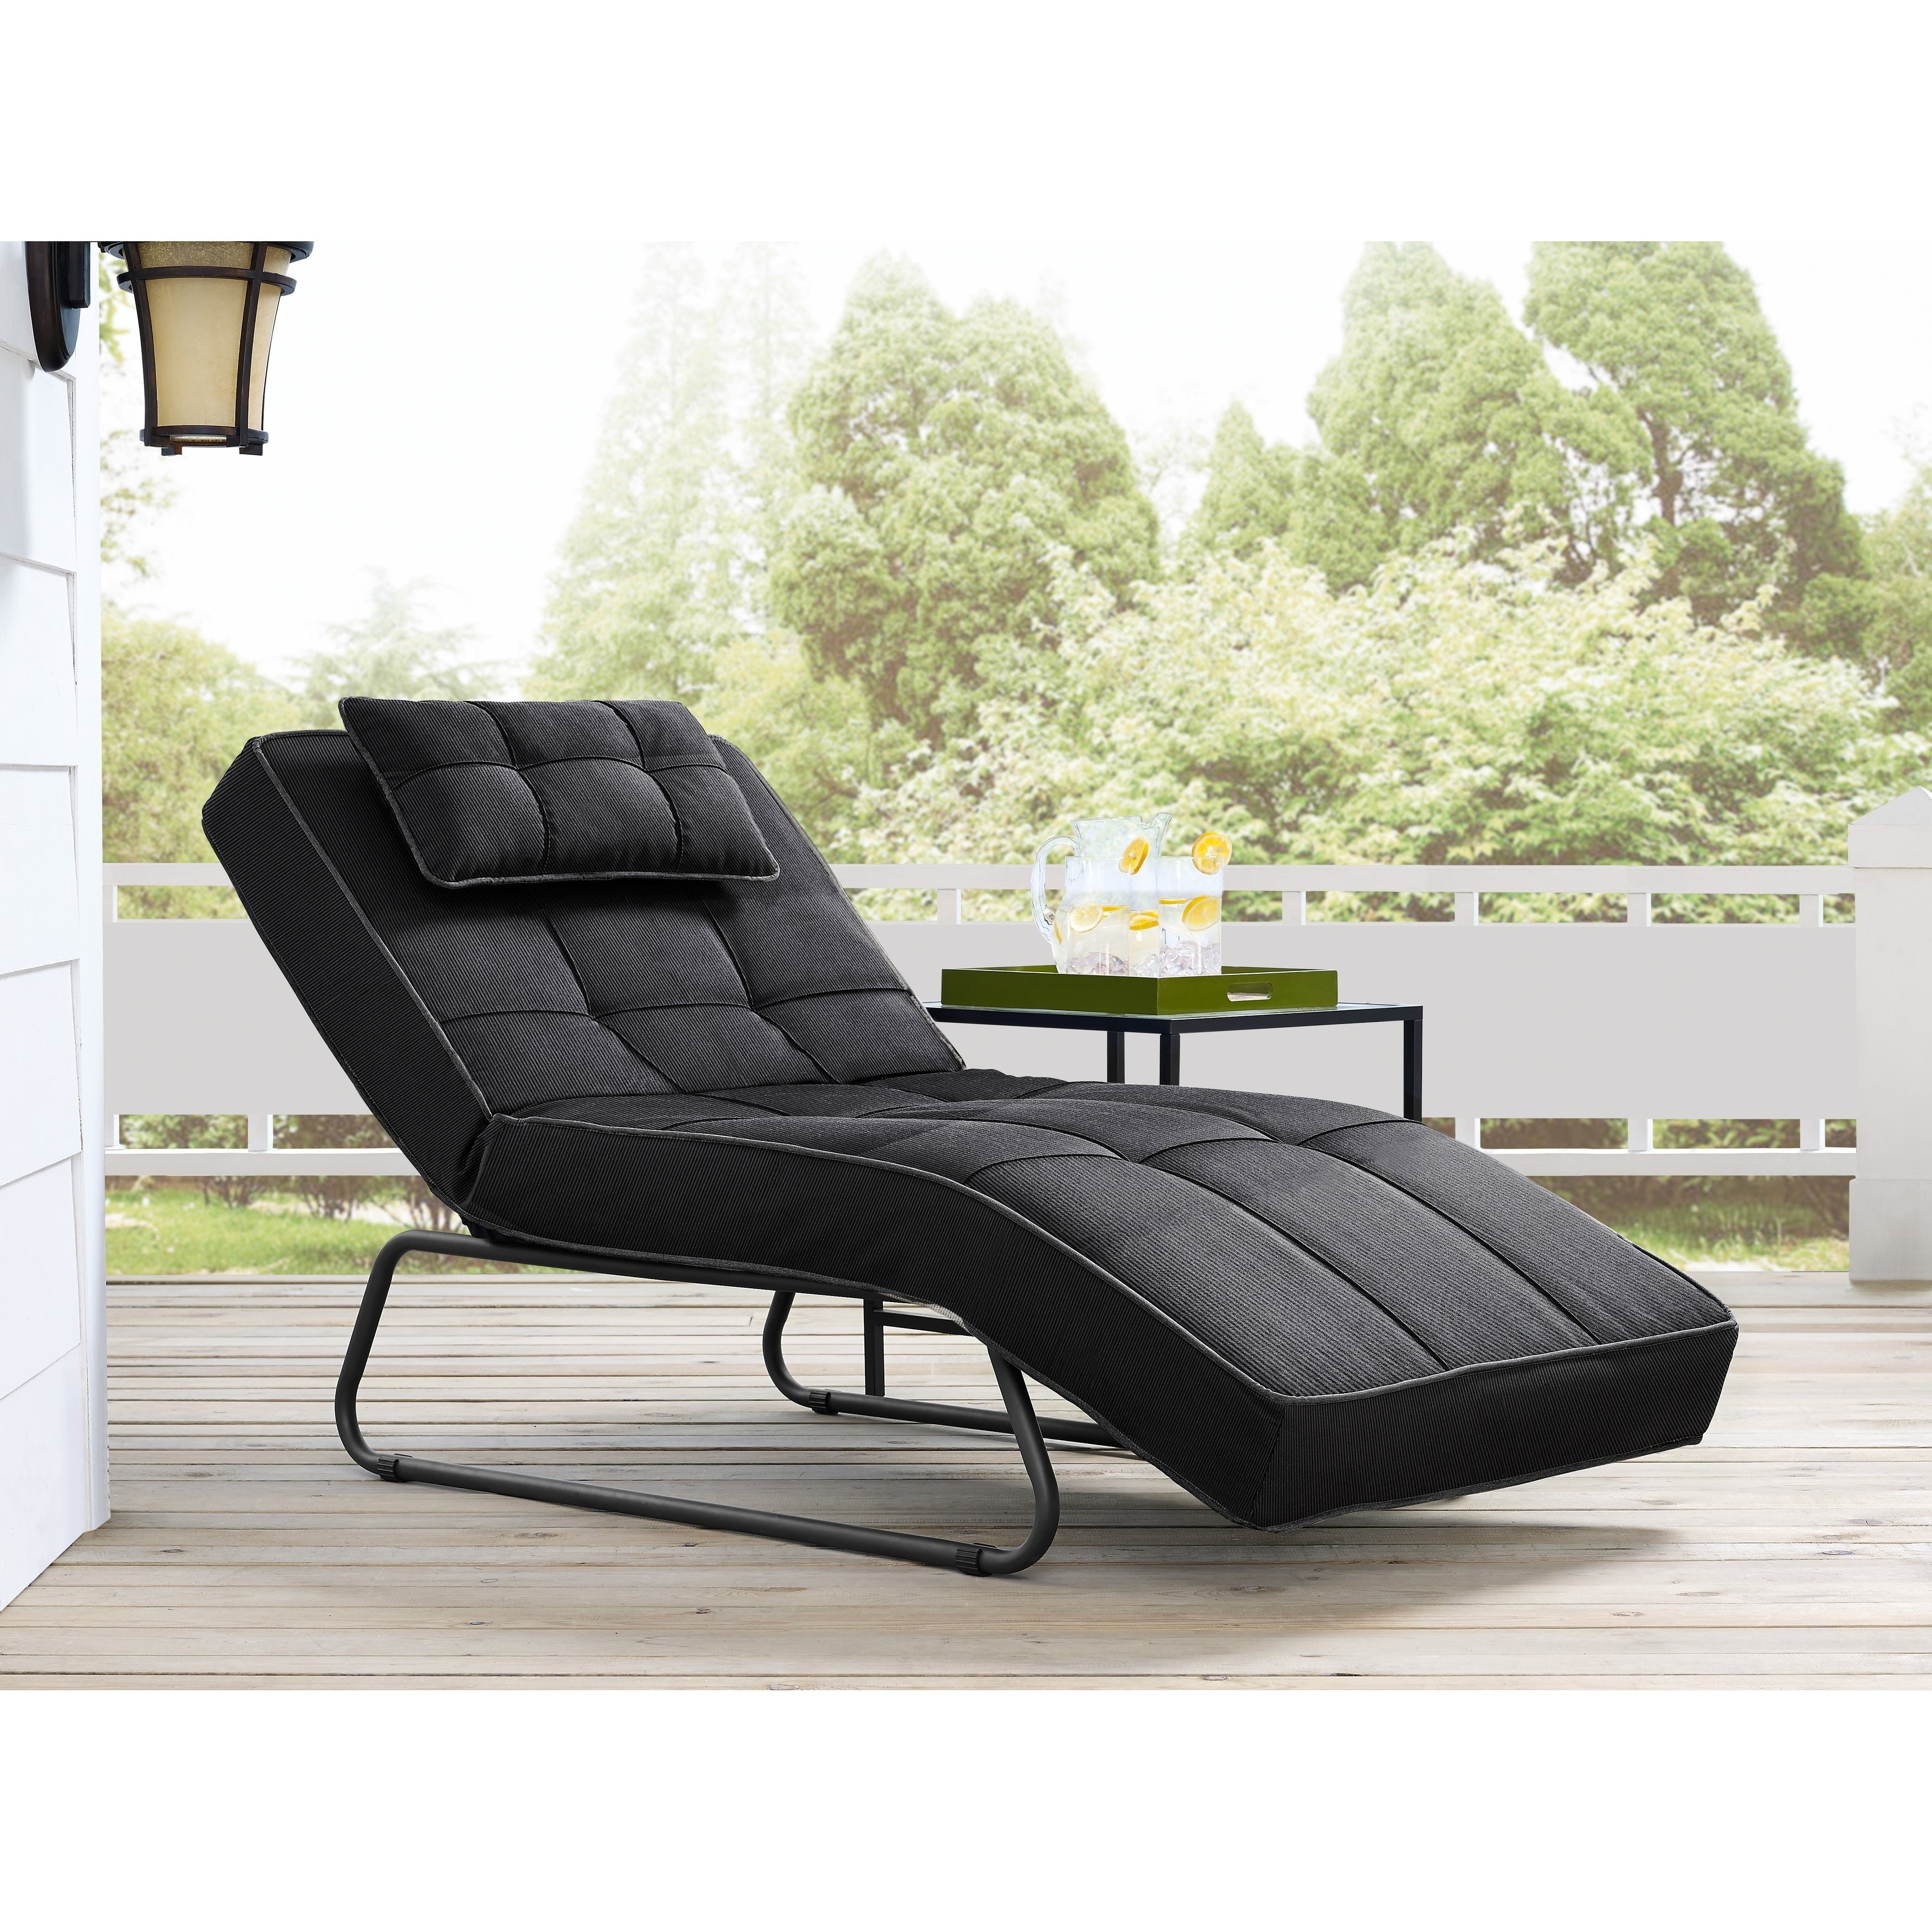 Relax A Lounge Laguna Pool And Deck Convertible Chaise Dark Grey (Grey)